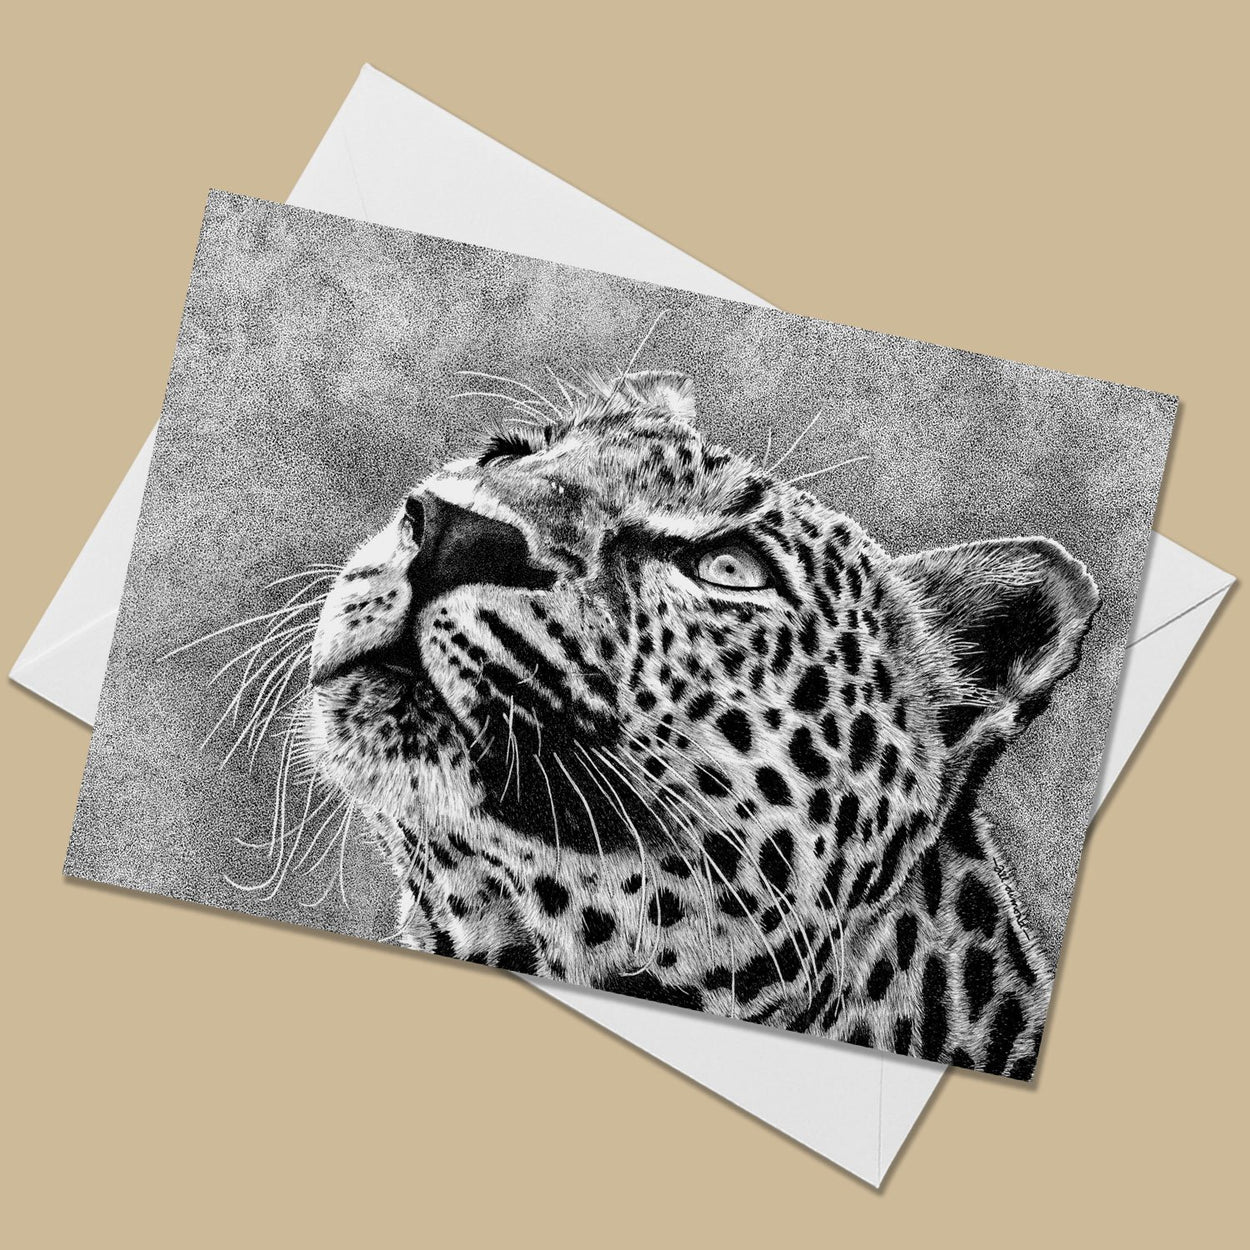 Leopard Greeting Card - The Thriving Wild